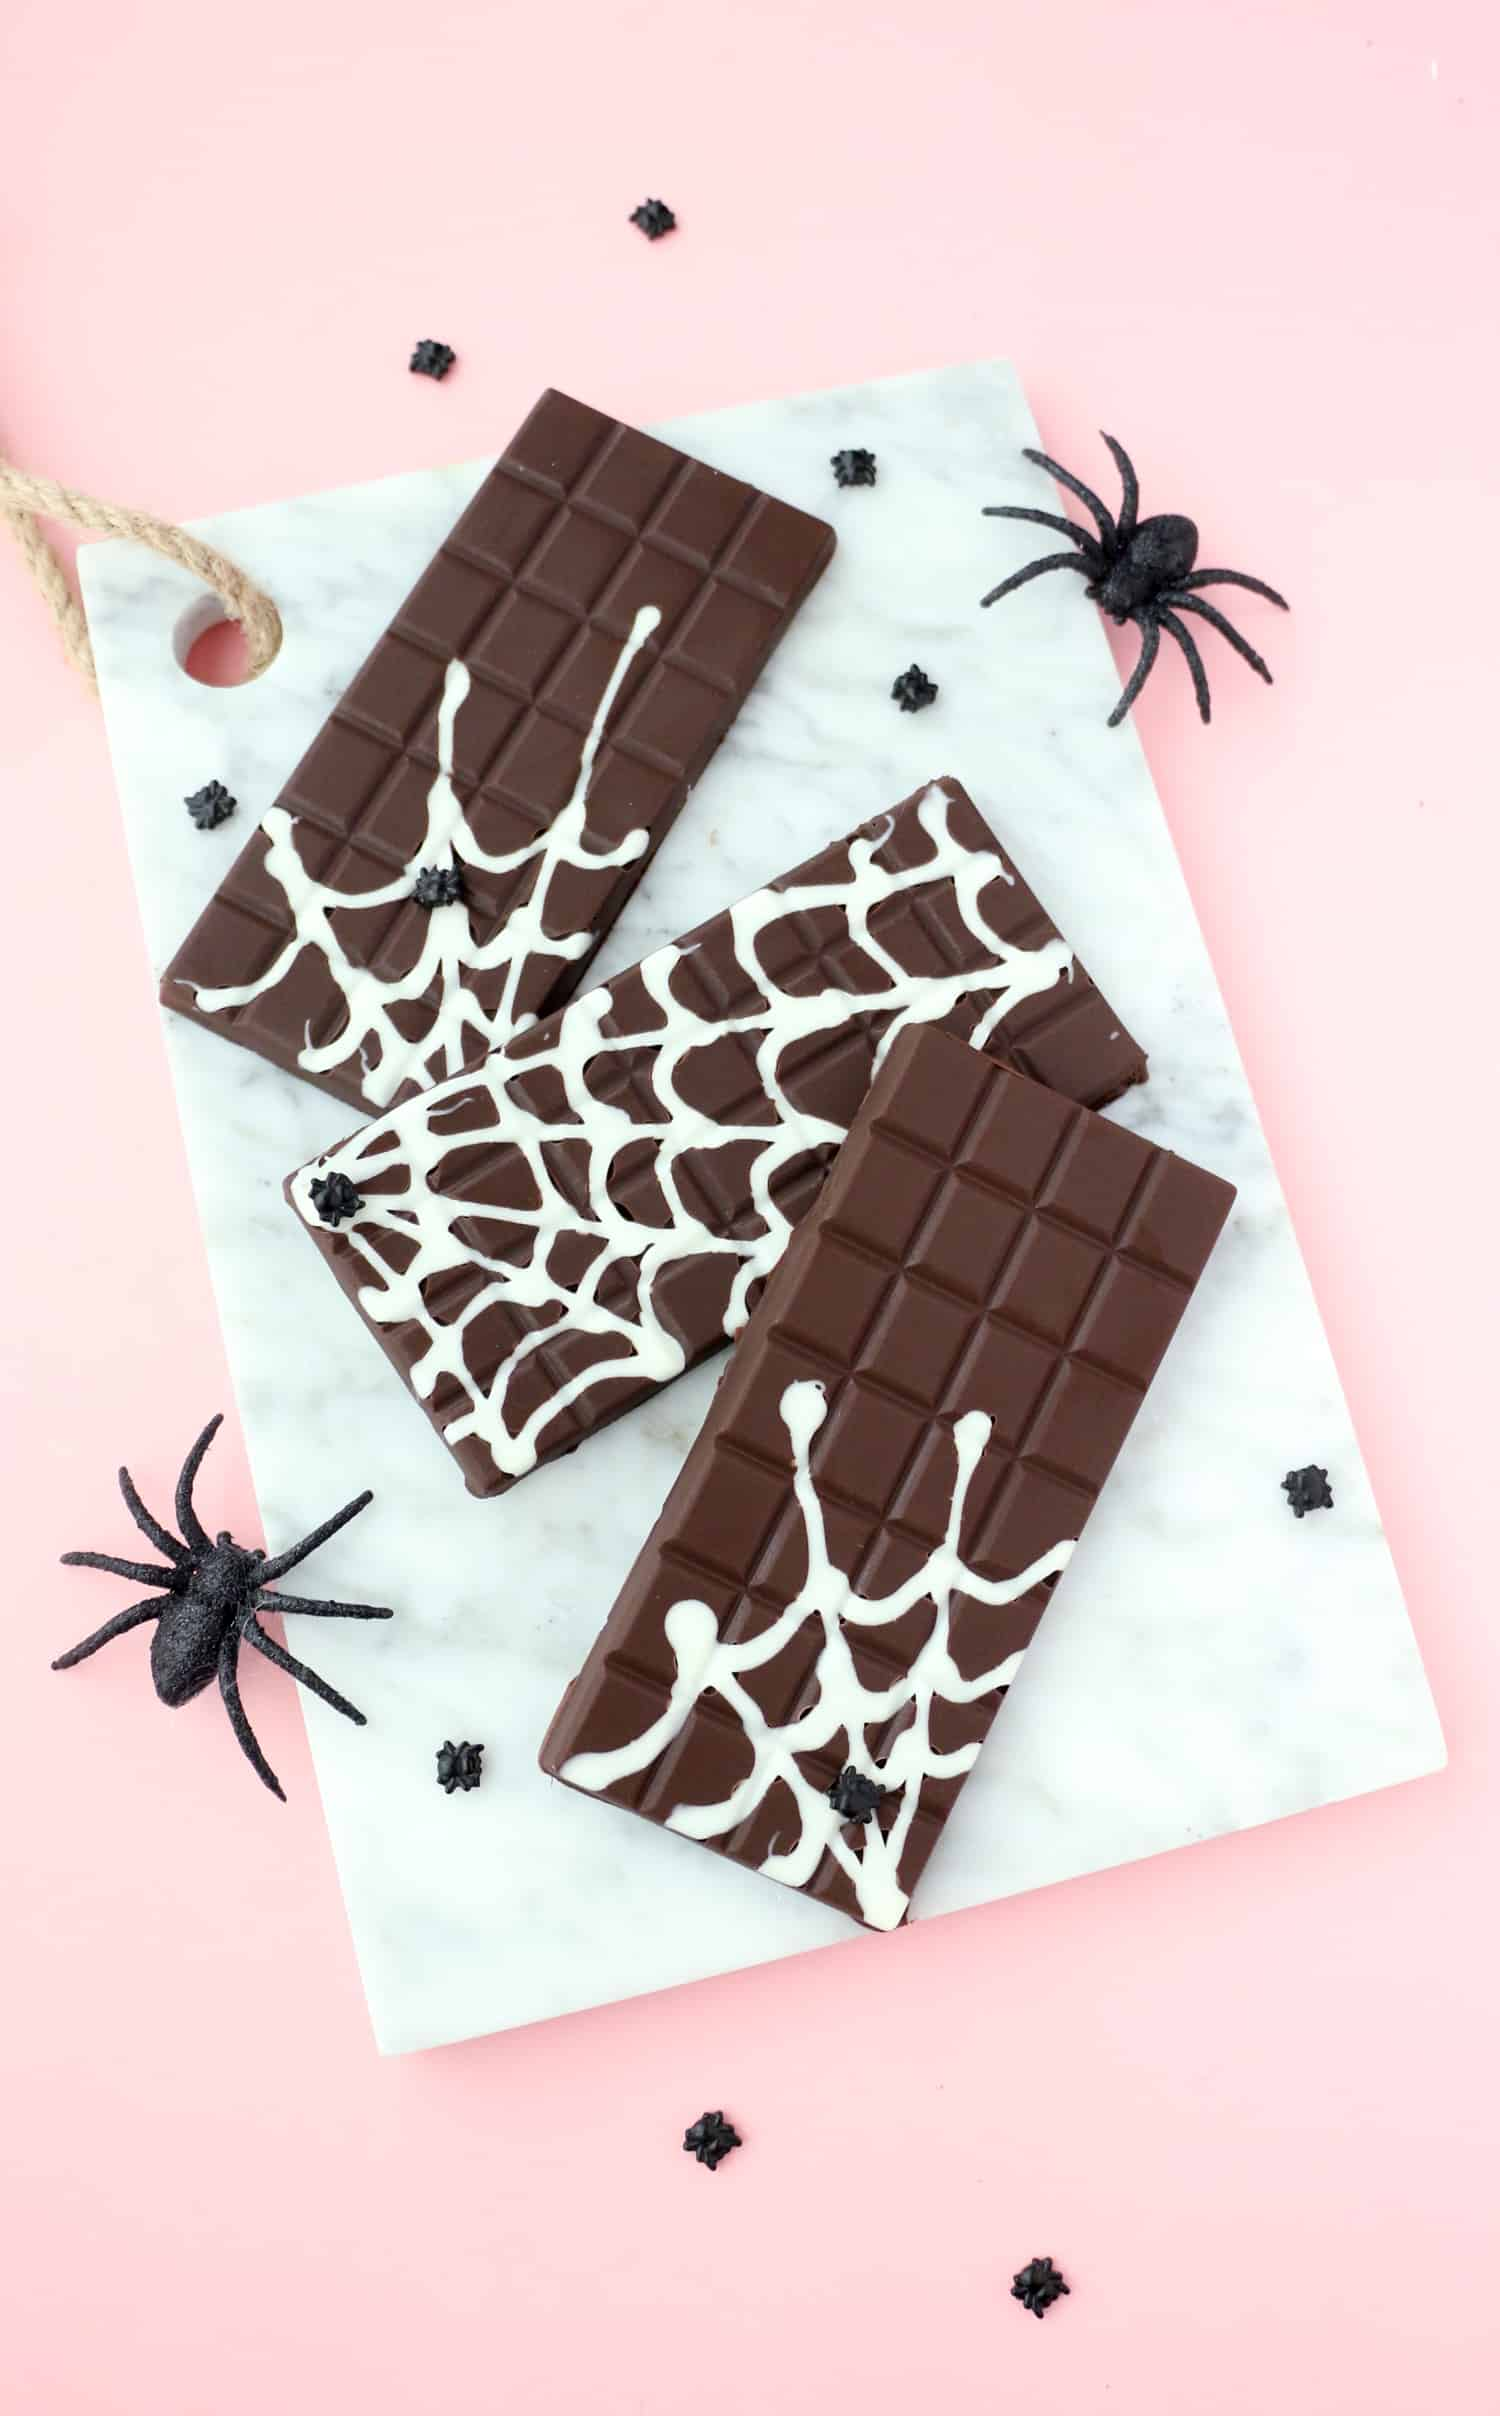 DIY-Spider-Web-Chocolate-Bars-8